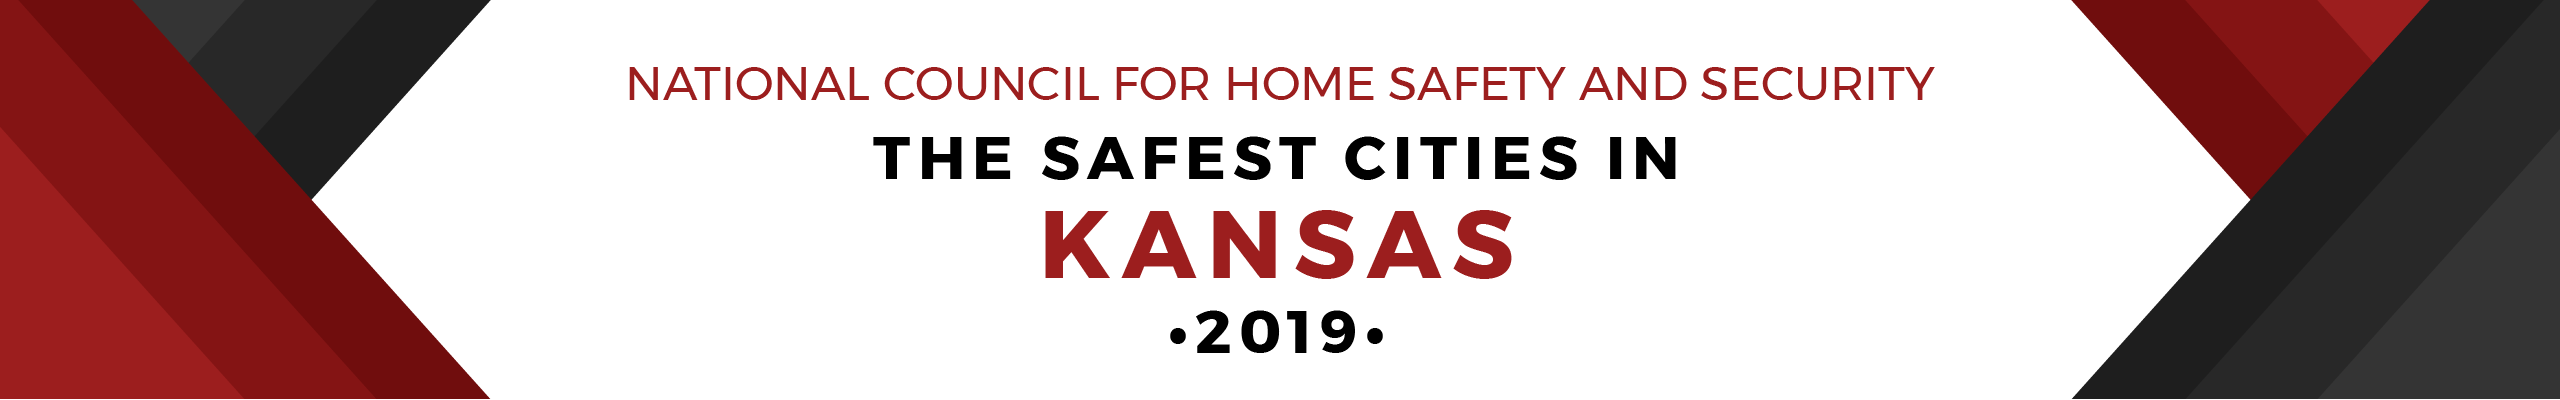 Safest Cities Kansas - header